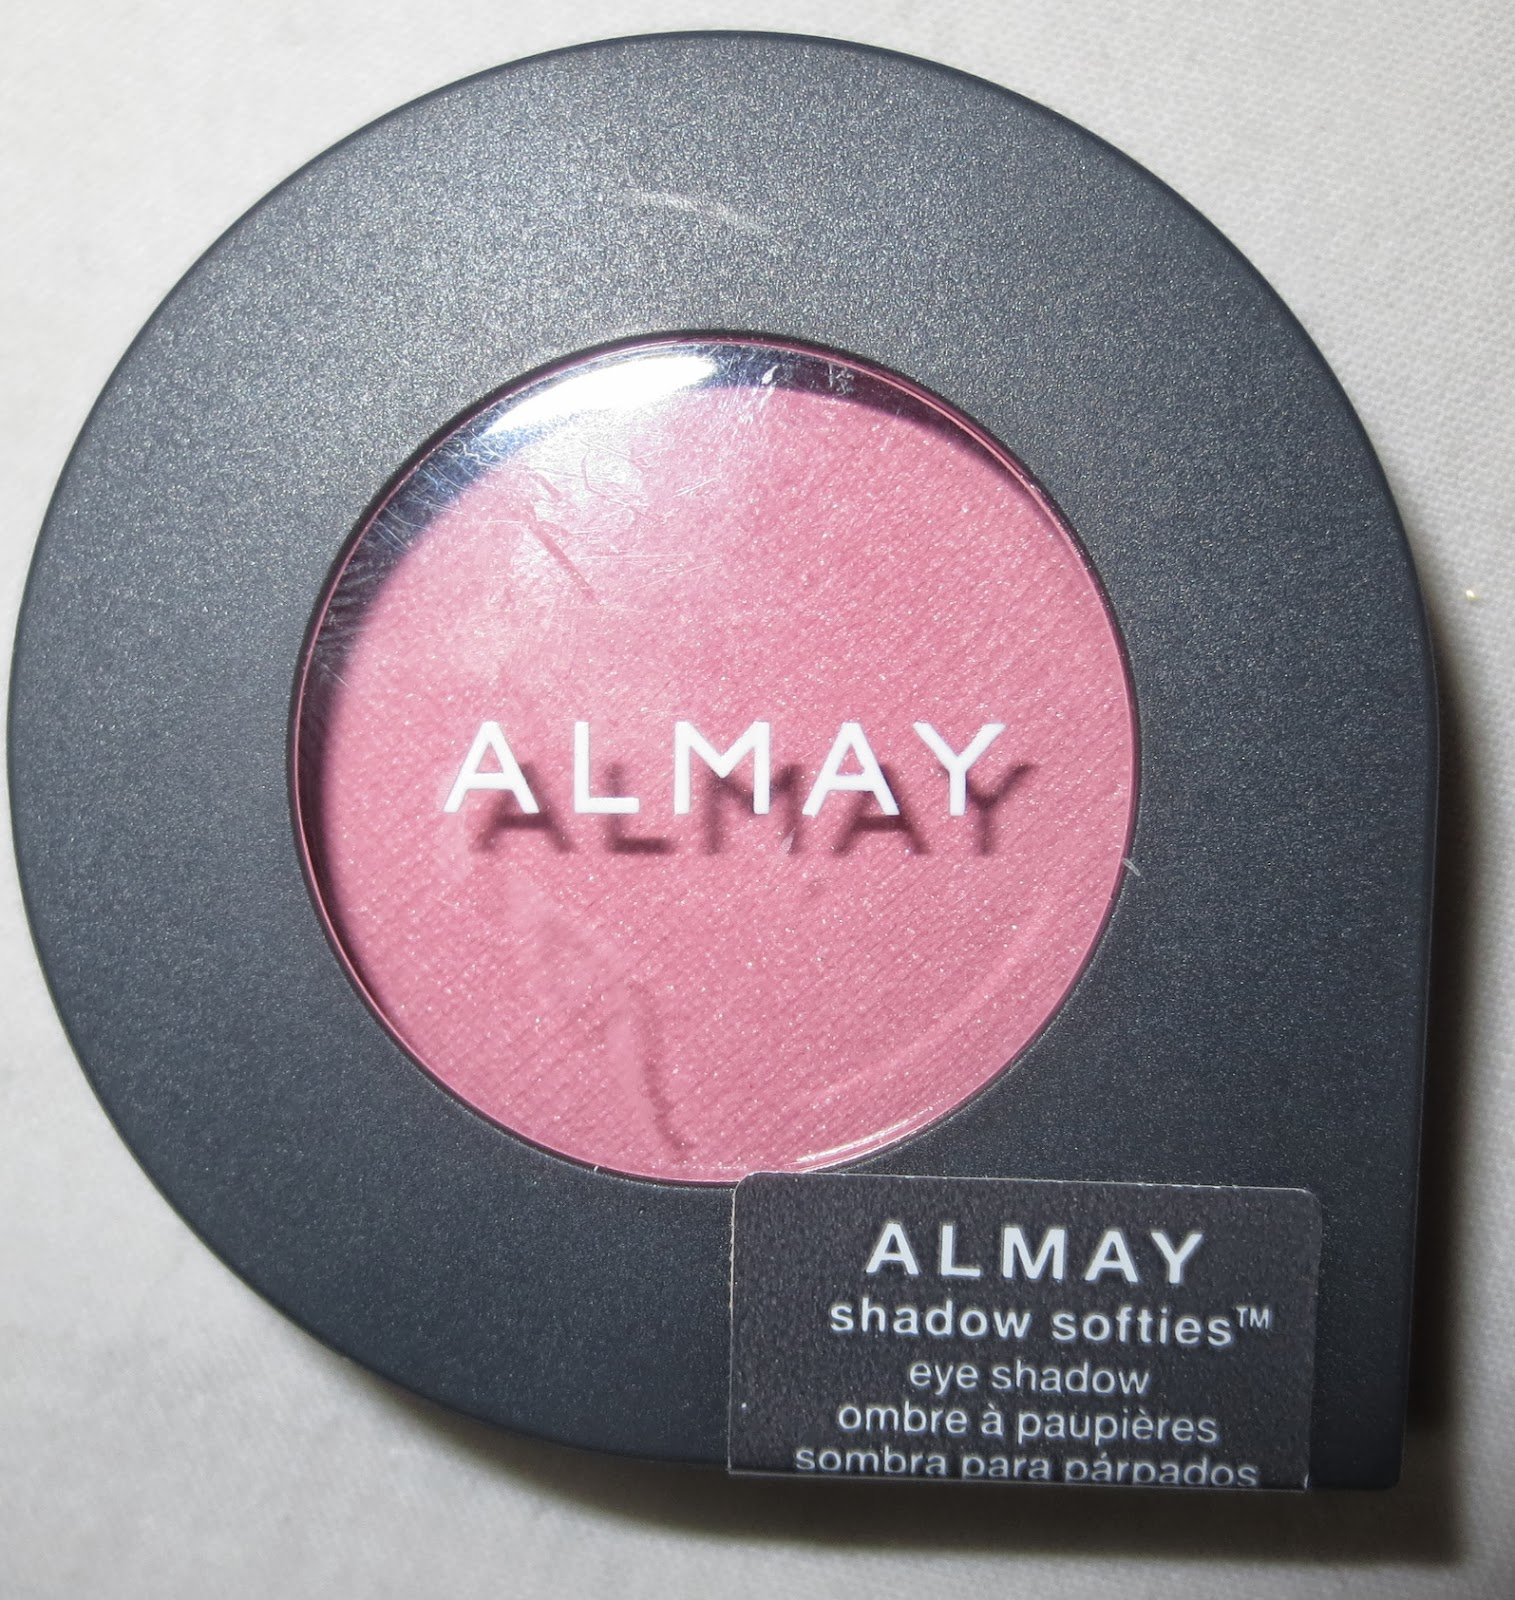 Almay Shadow Softies in Petal